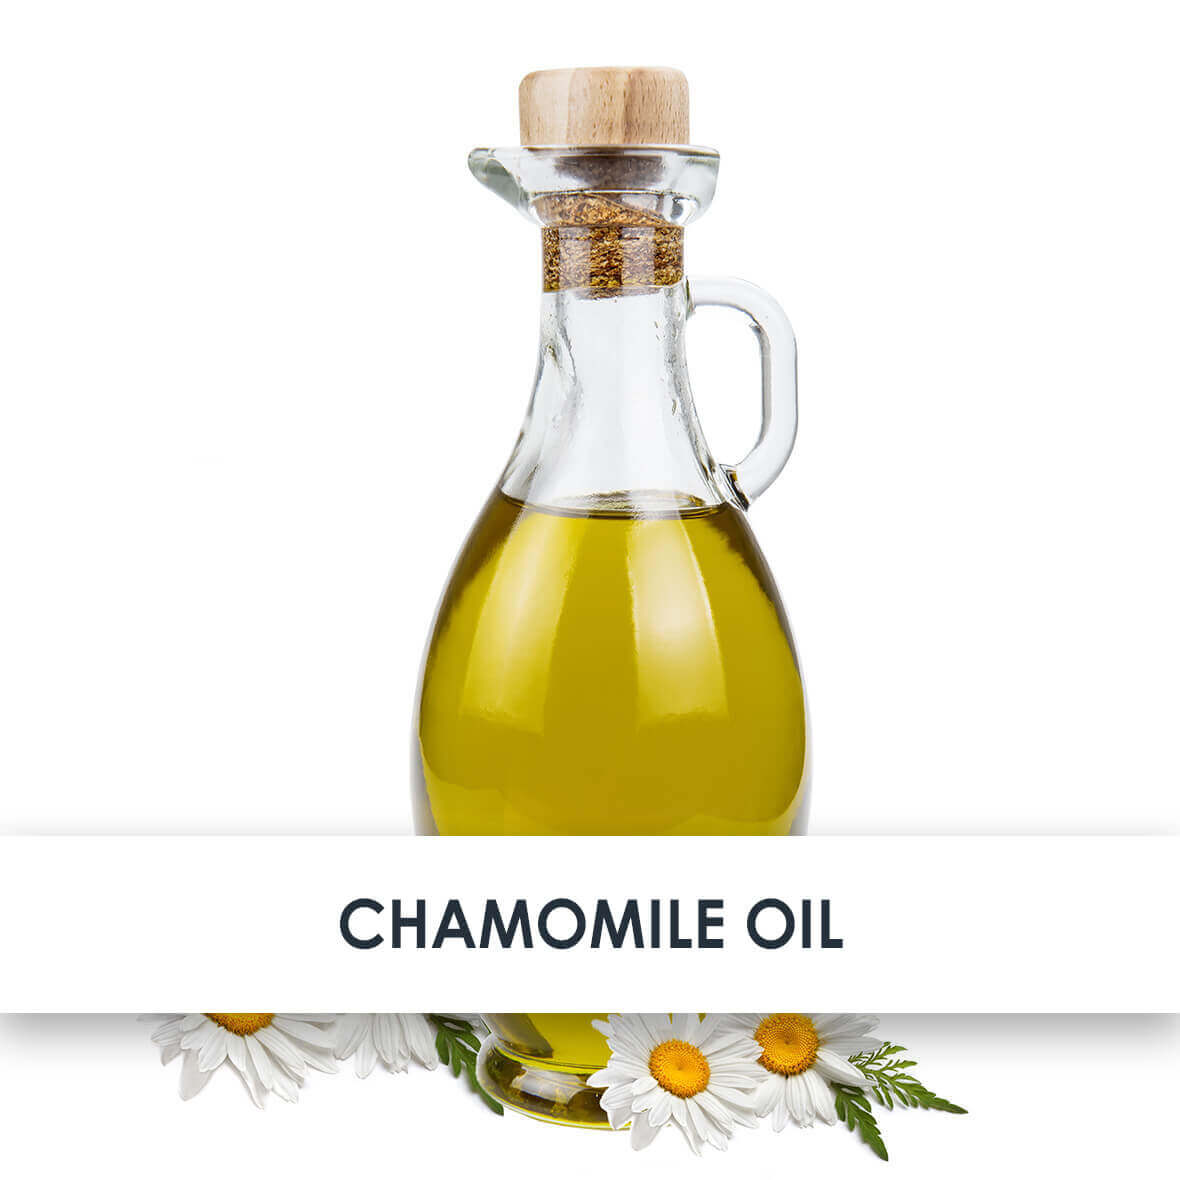 Chamomile Oil Skincare Benefits